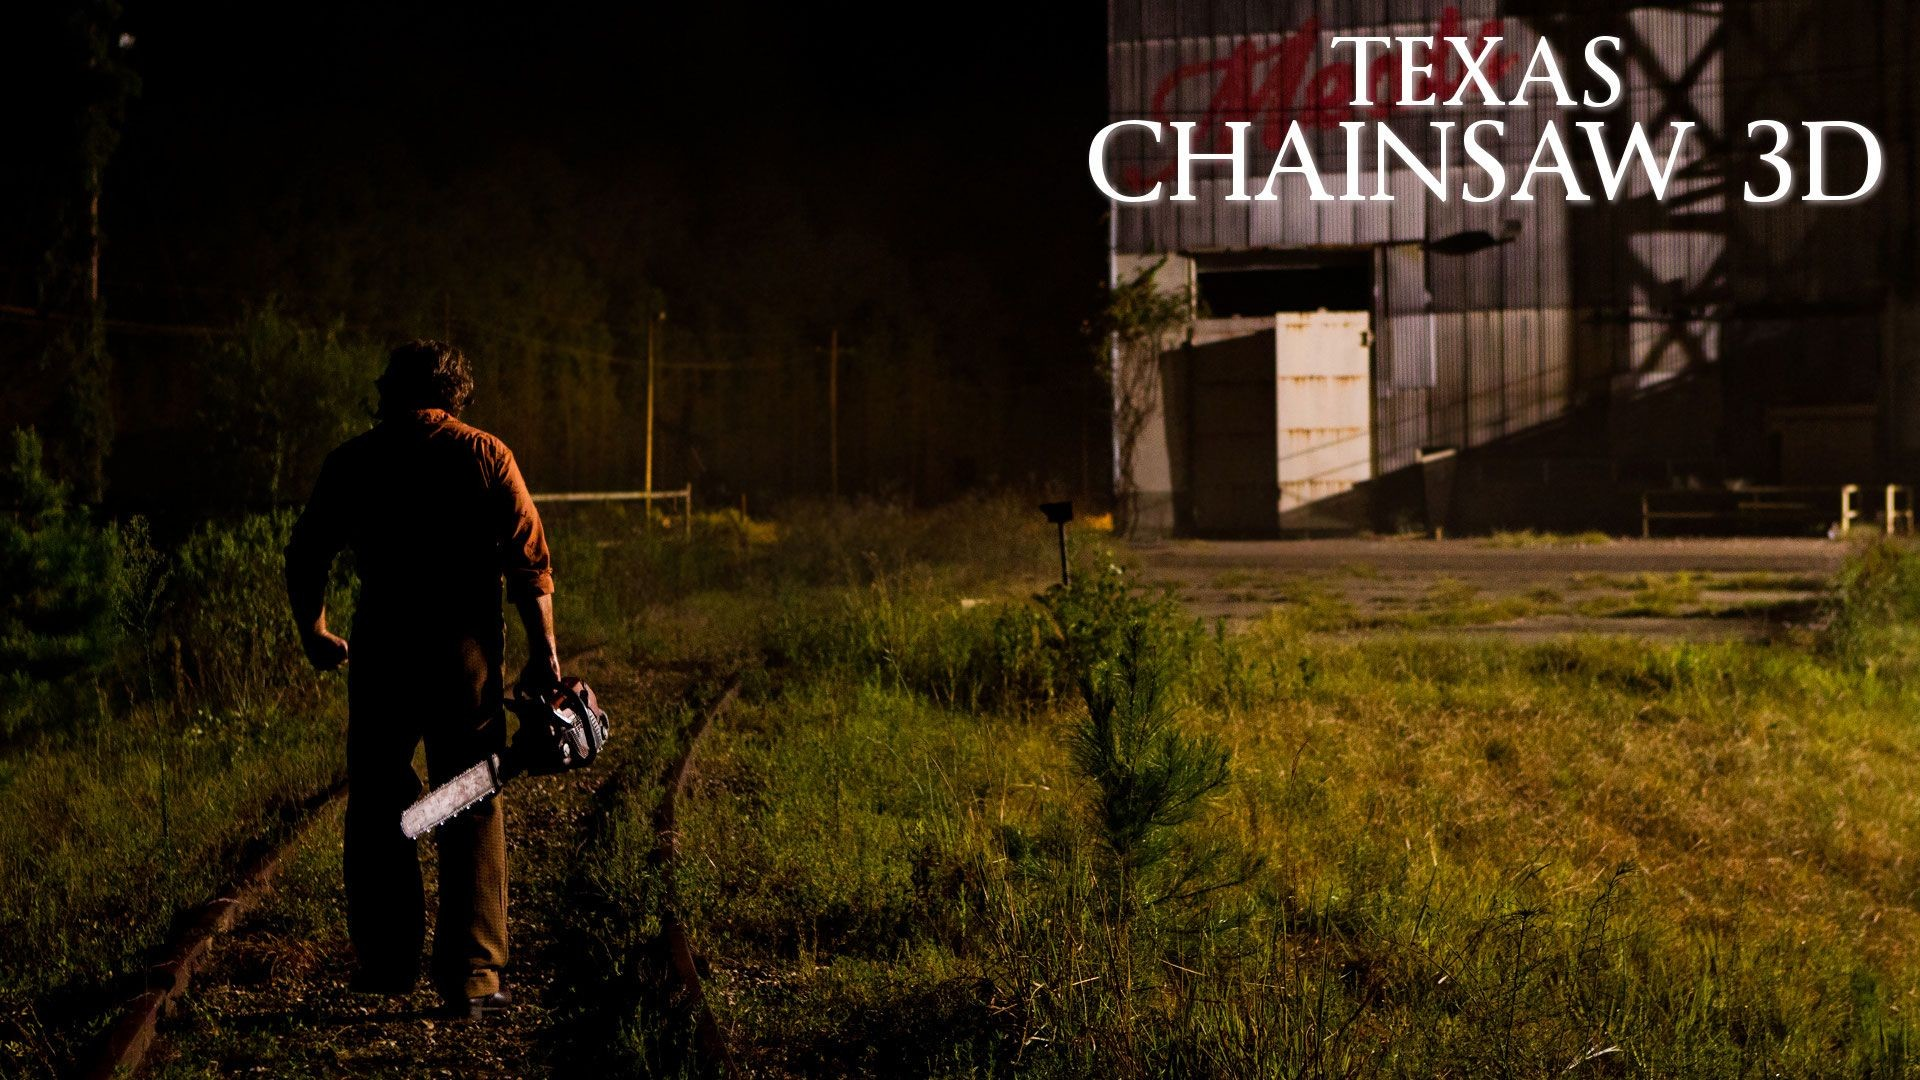 Res: 1920x1080, DeviantArt: More Like Texas Chainsaw Massacre 3D Wallpaper 2 by .